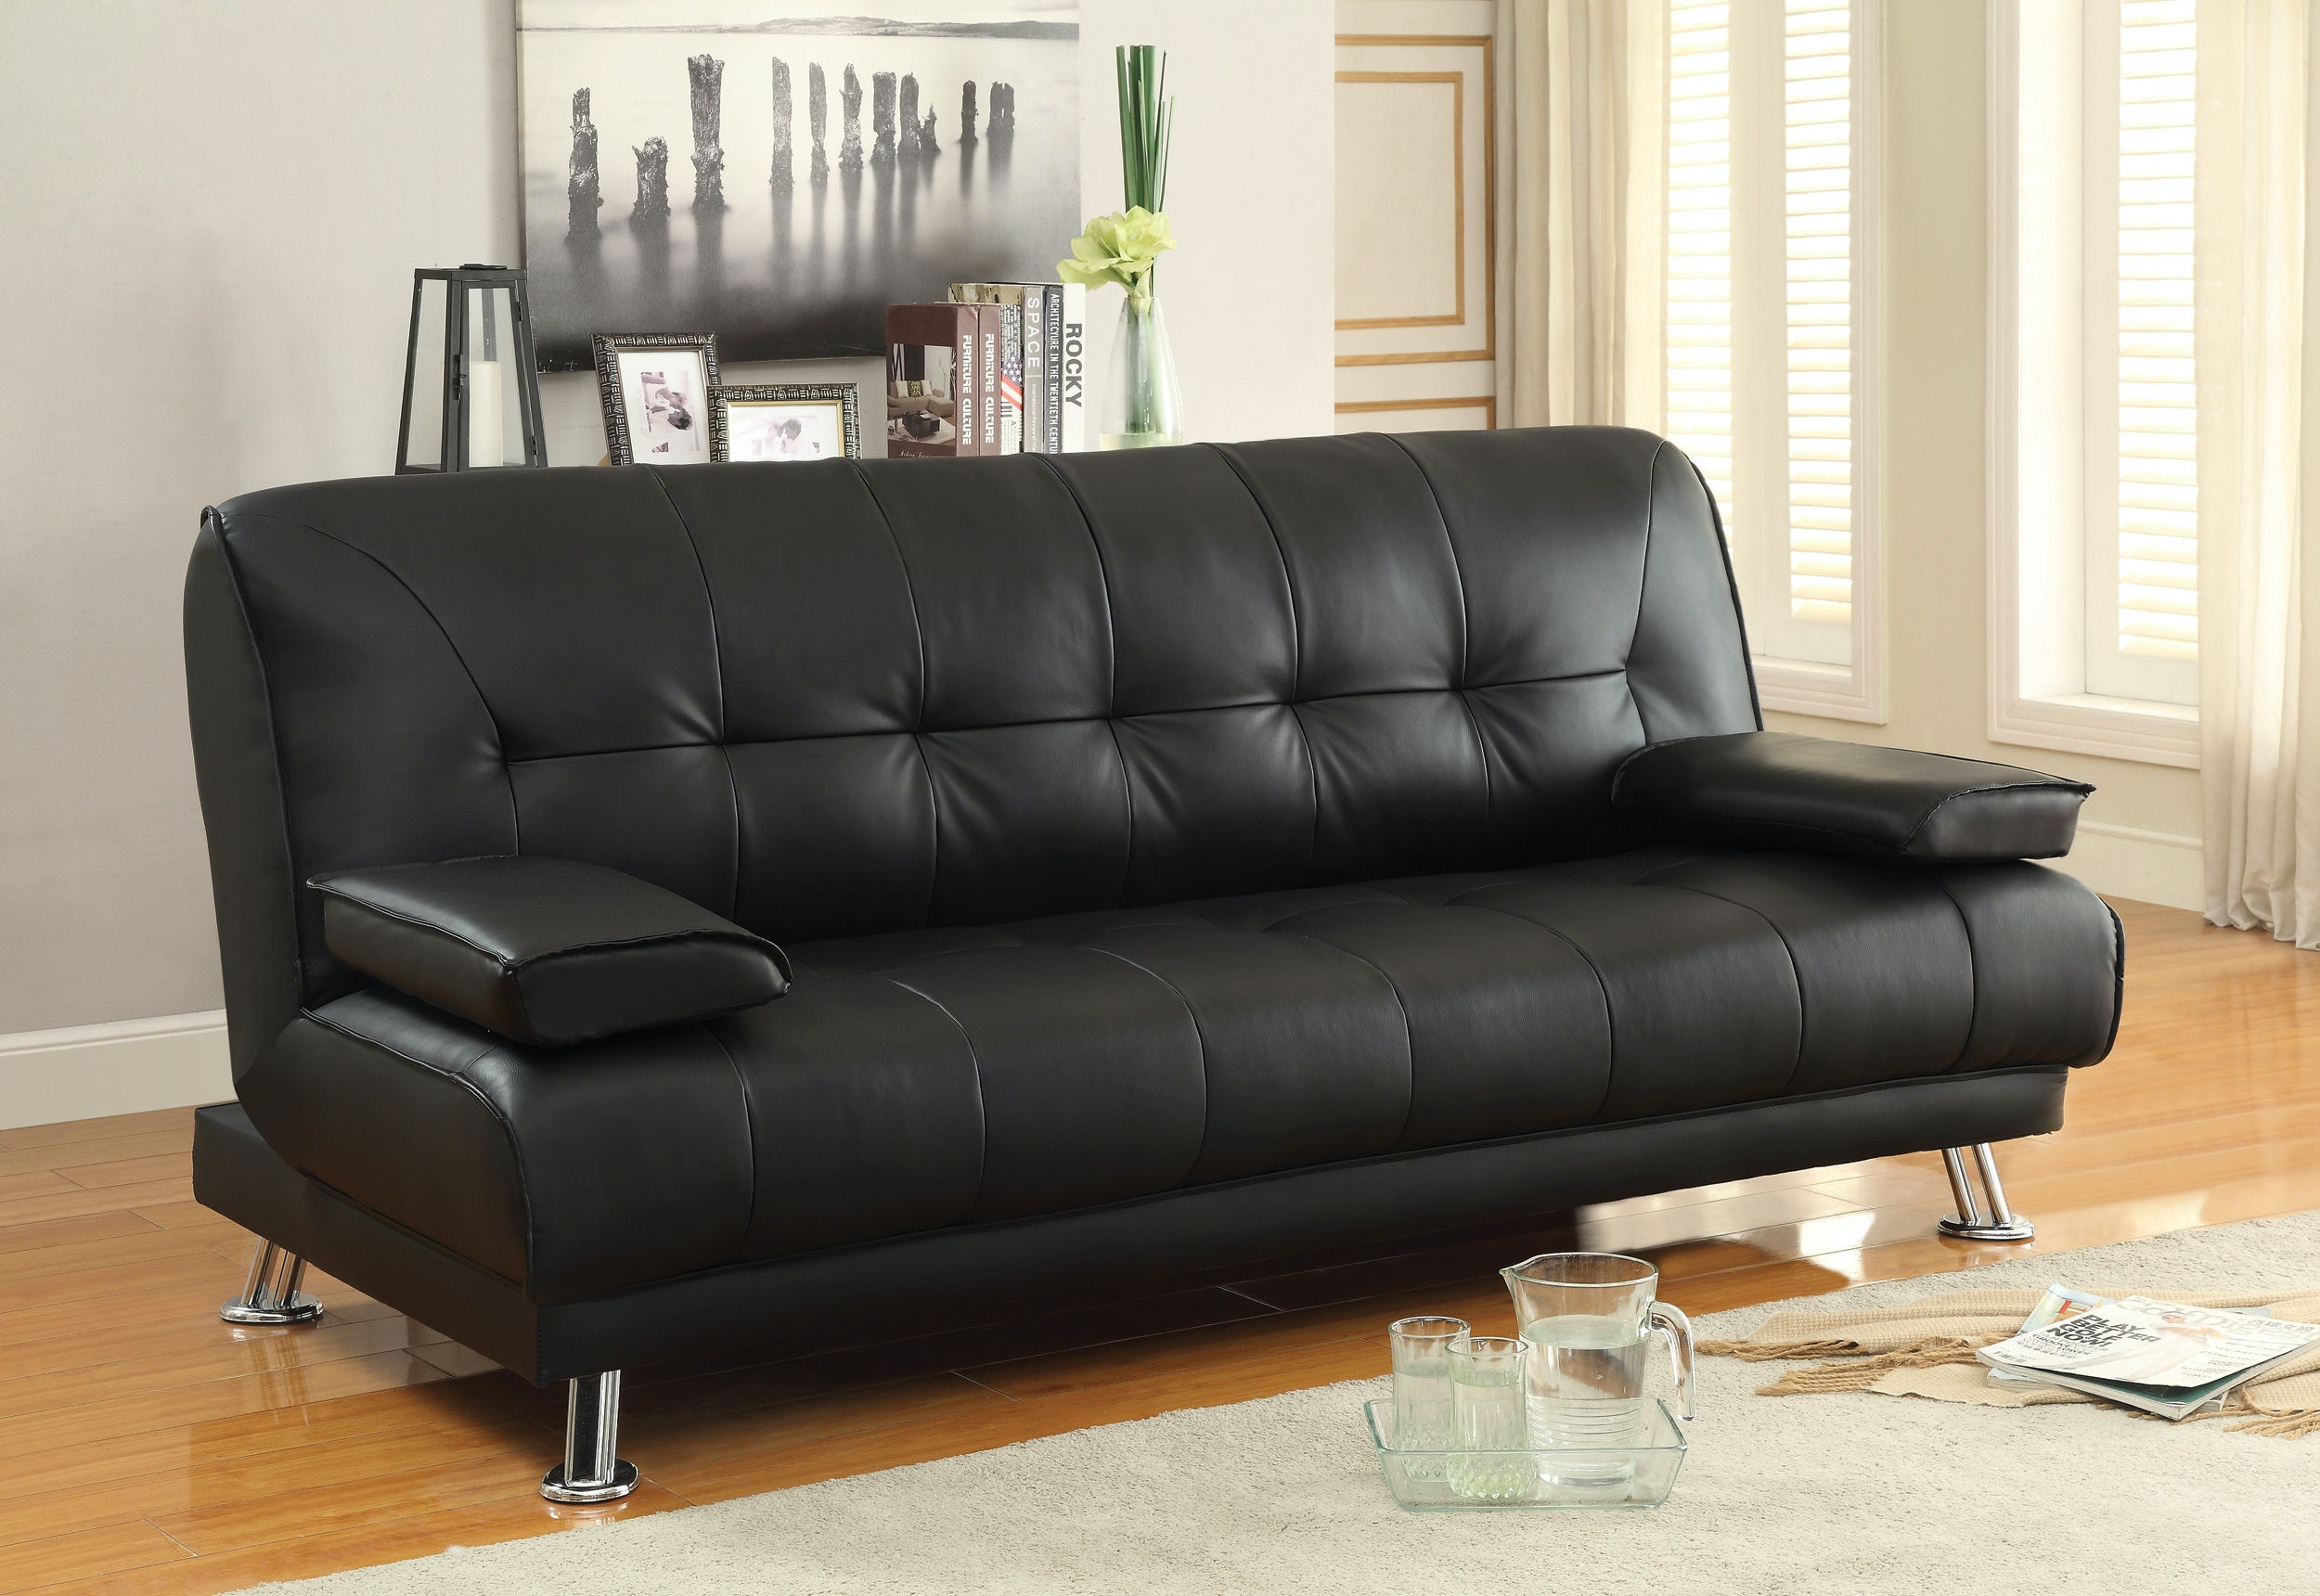 Coaster Living Room Sofa Bed The Furniture House